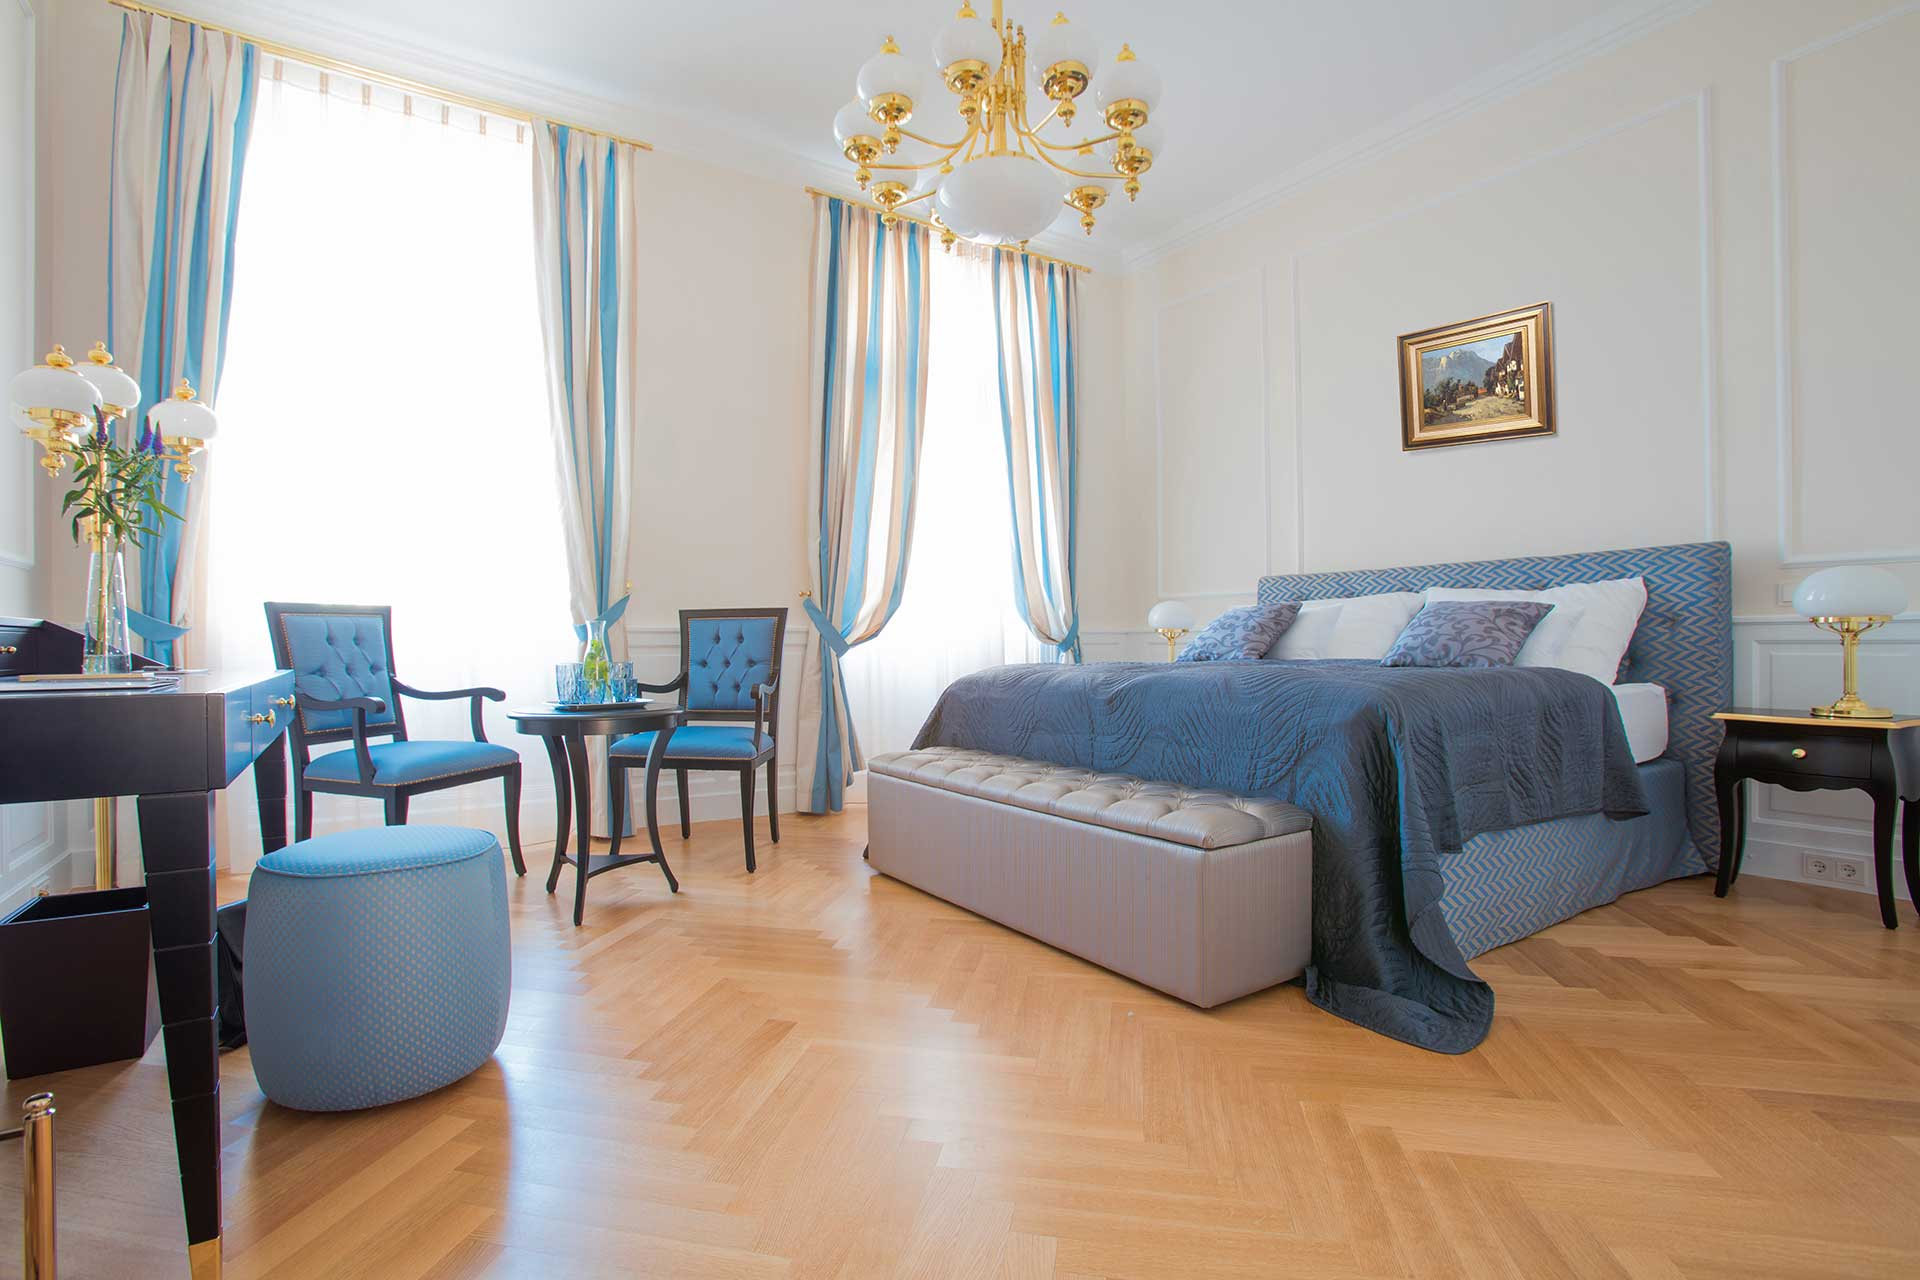 Family Accommodation in Vienna-Imperium Residence